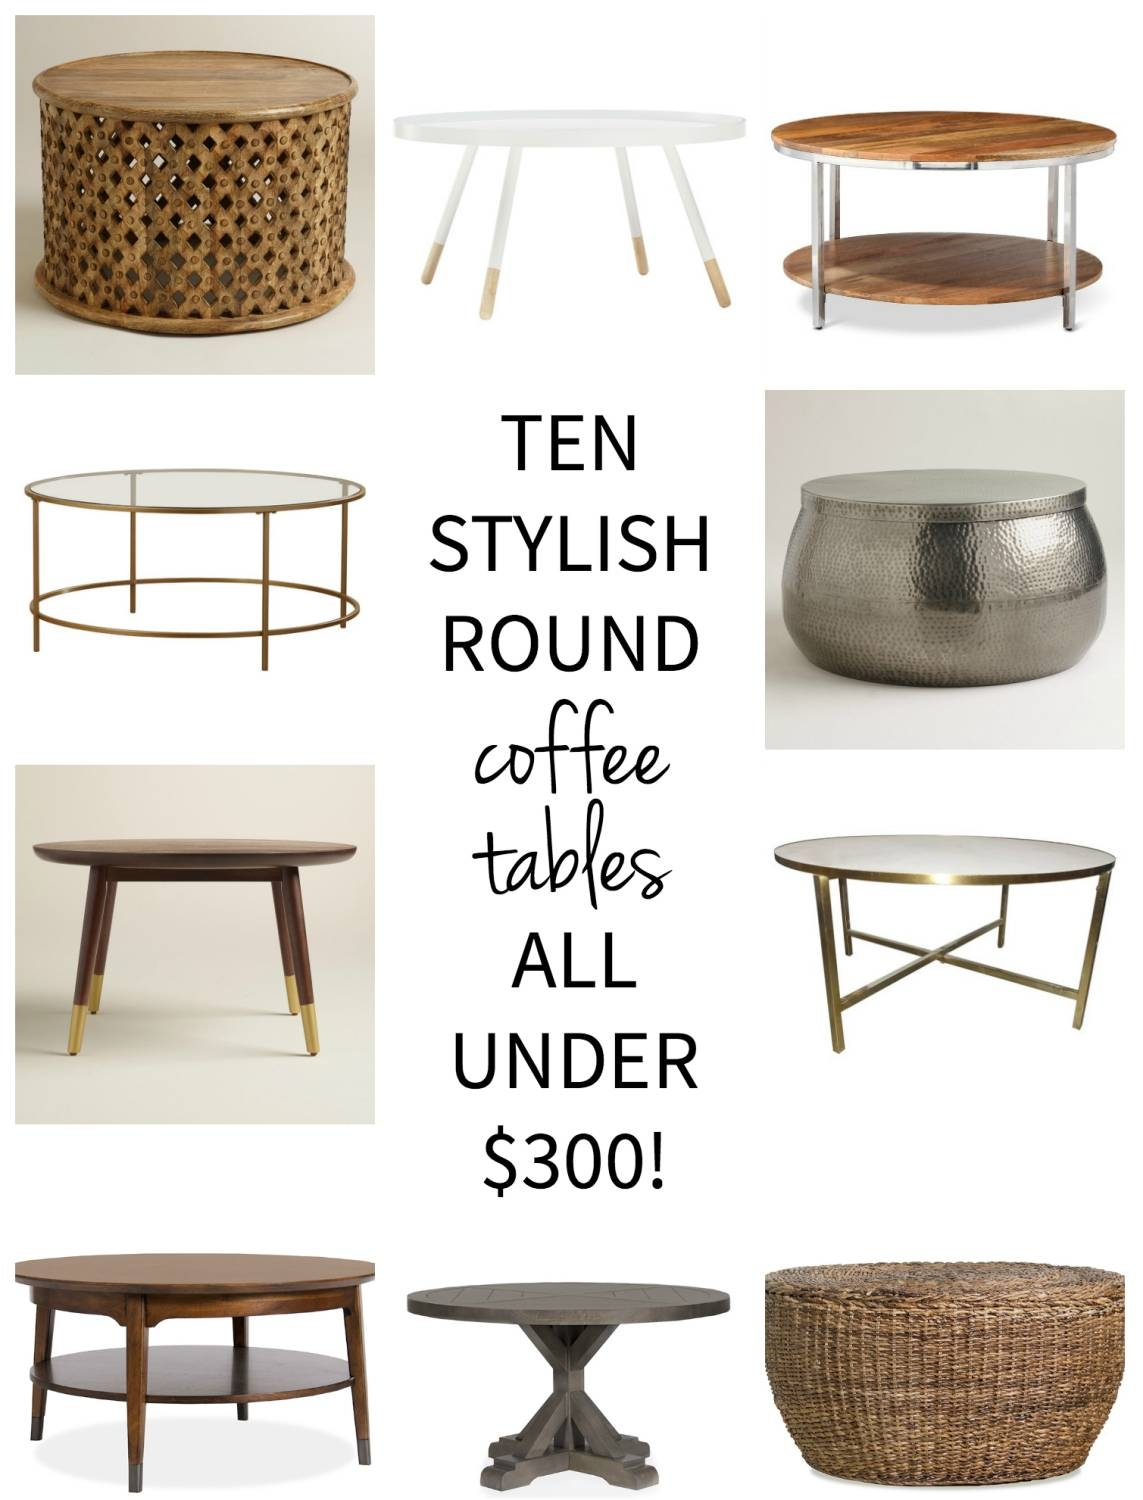 Affordable Round Coffee Tables - The Chronicles Of Home within Round Woven Coffee Tables (Image 3 of 30)